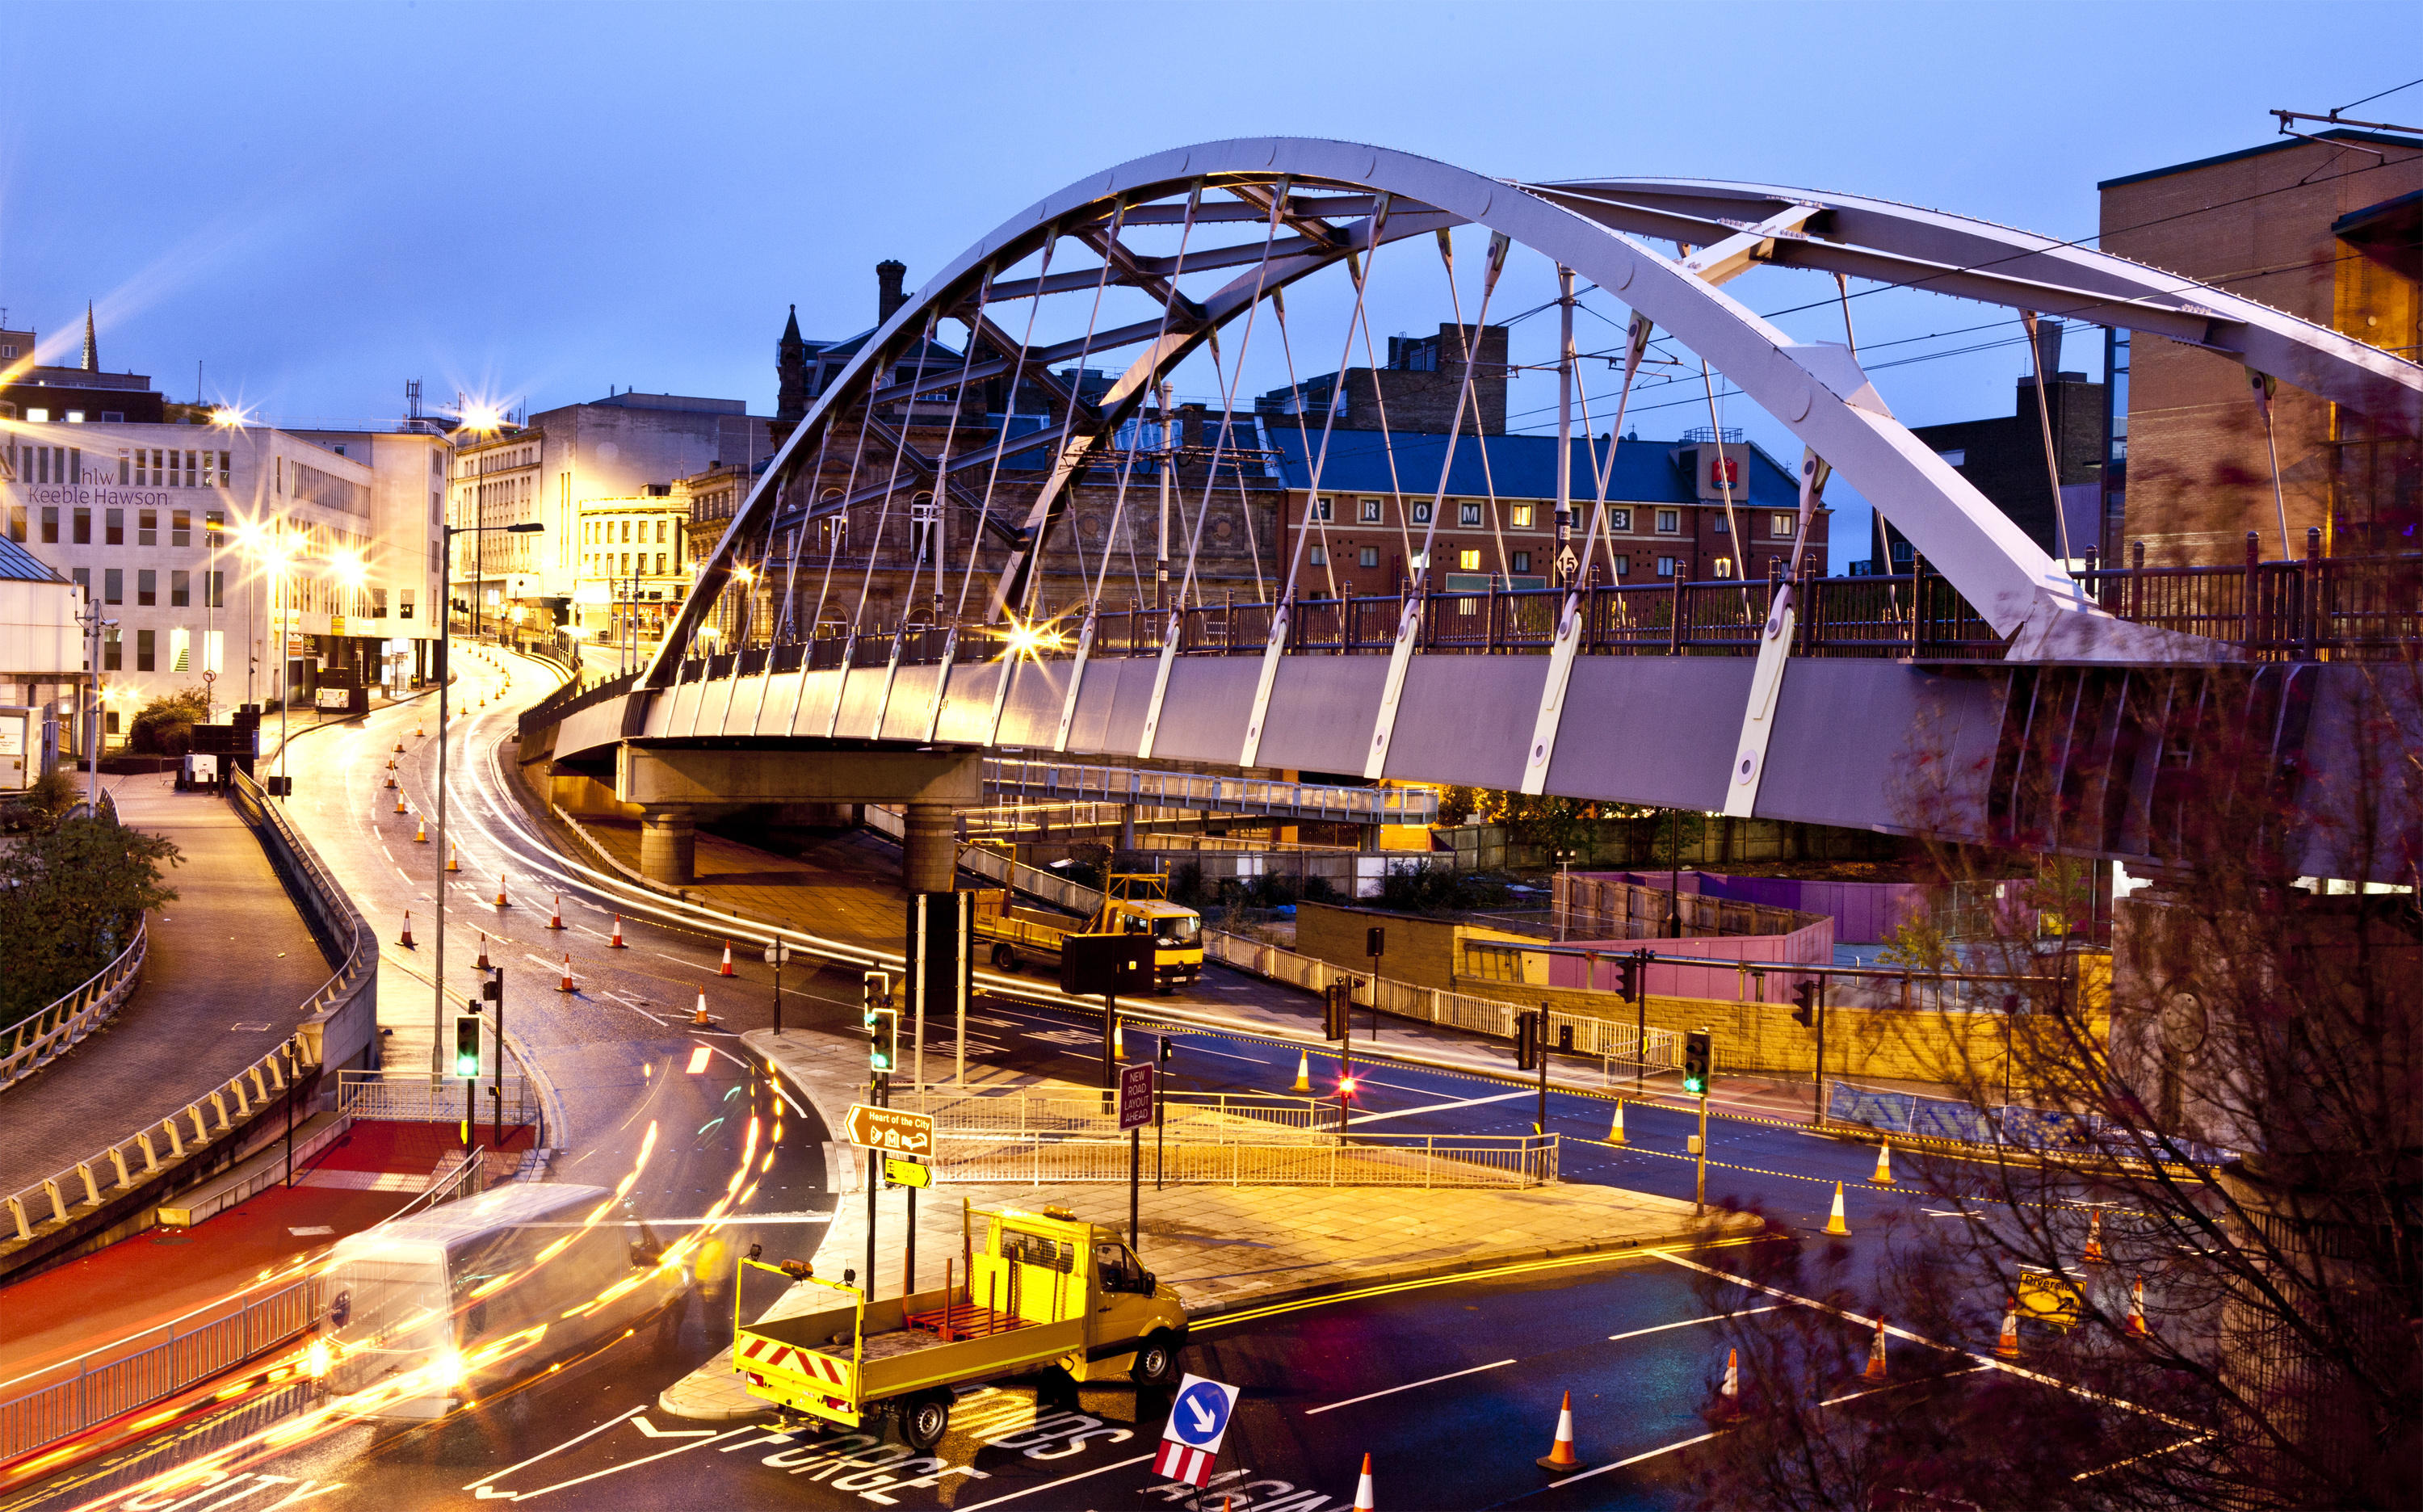 Sheffield Tram Bridge and lines by night